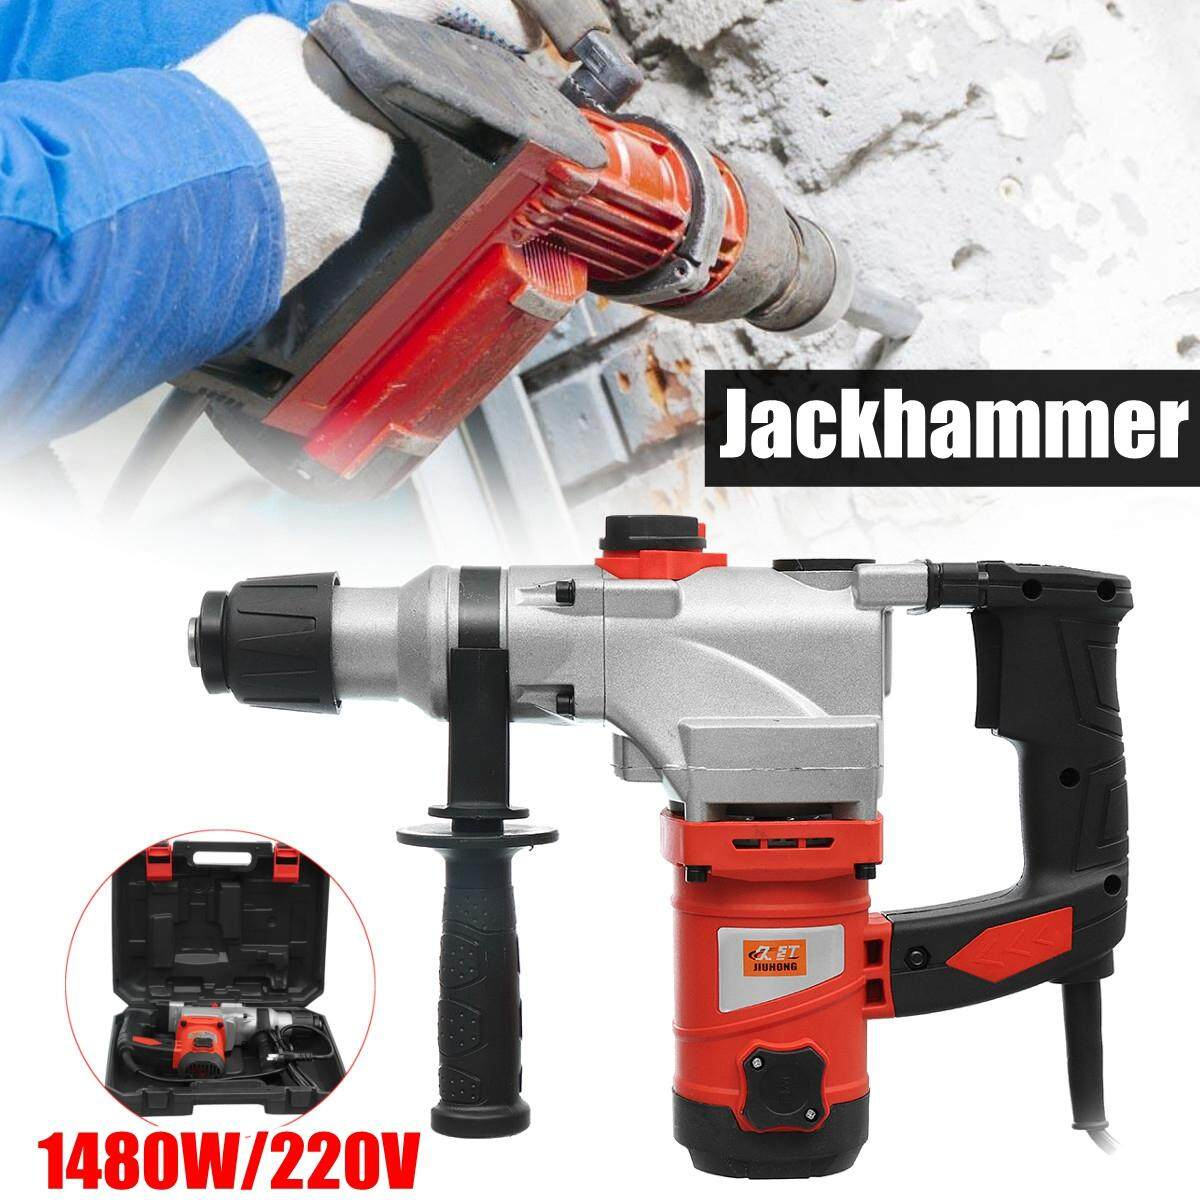 Home Demolition Hammers Buy At Best Price Bor Rotary Hammer Bosch Gbh 3 28 Dre 1480w Ac Power Jack Jackhammer Electric Concrete Drill